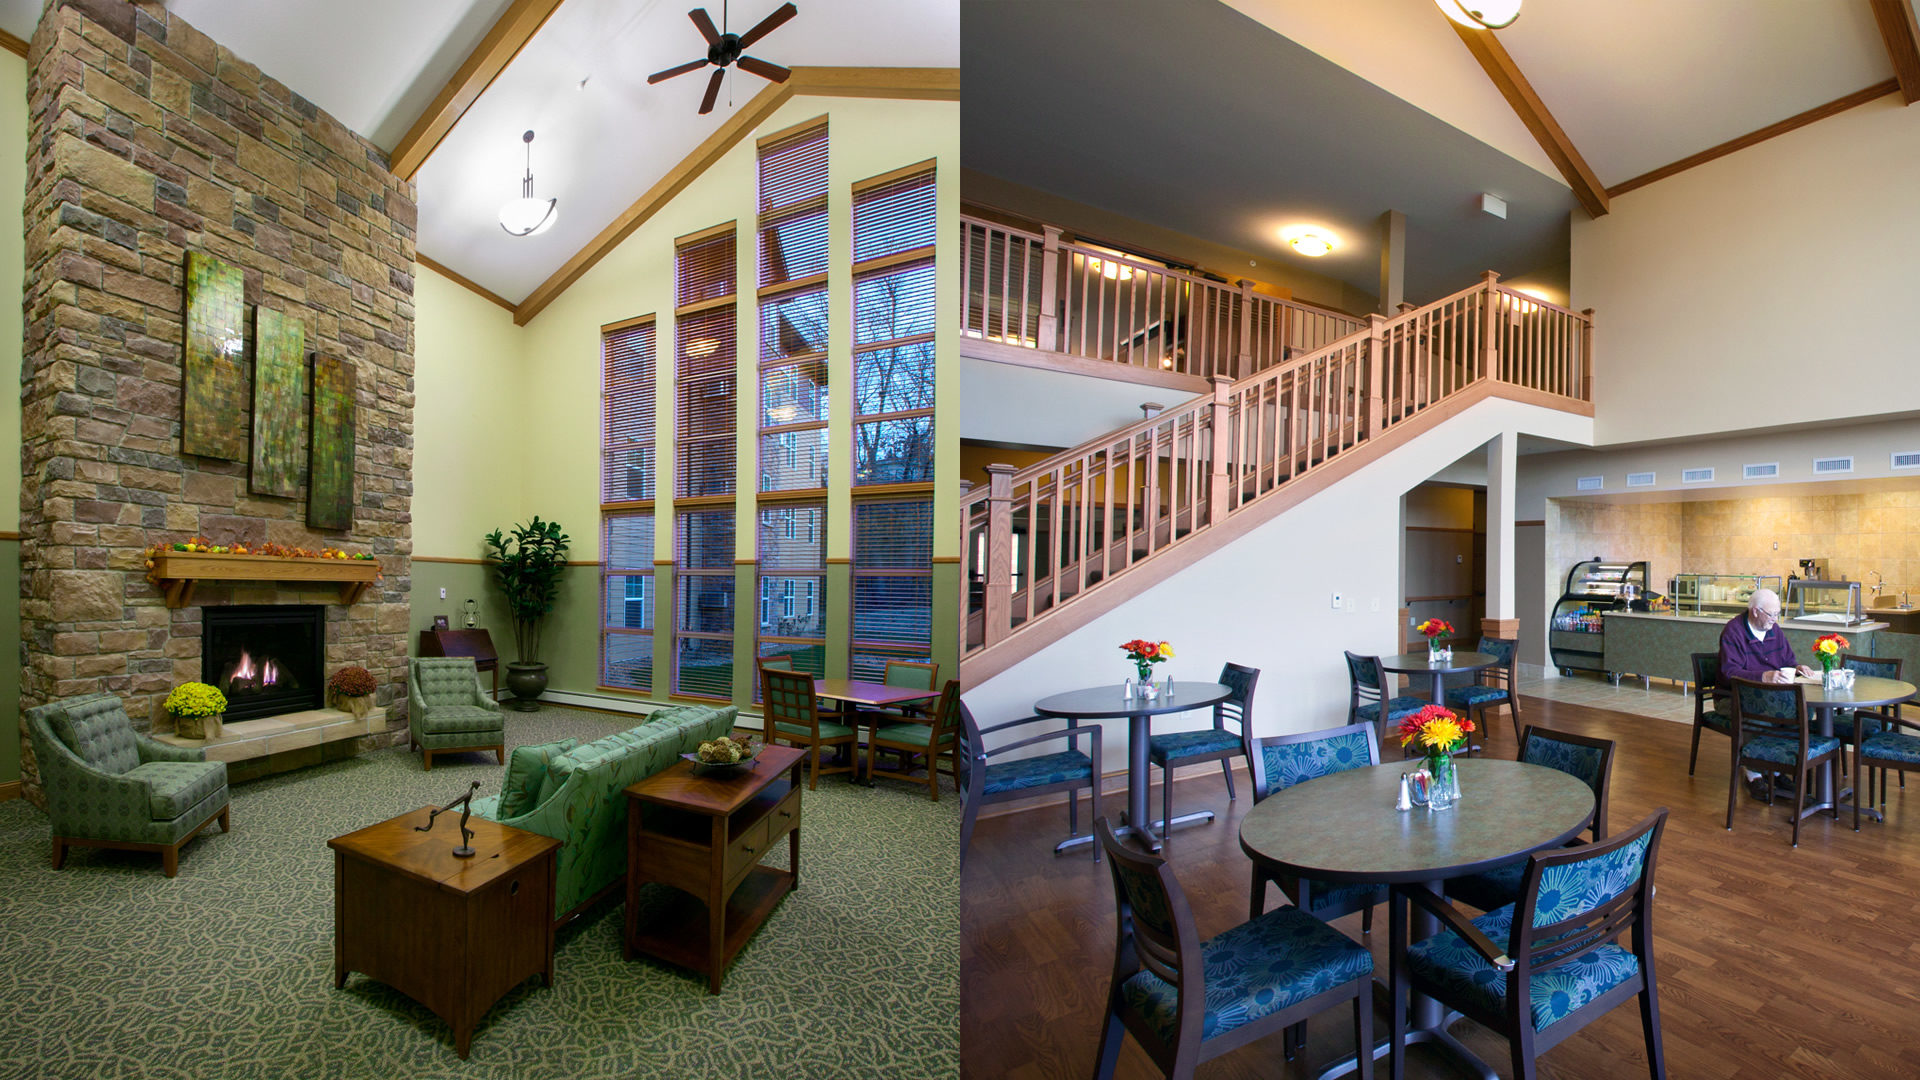 Valley Ridge Senior Residential Housing Burnsville MN Comminity Room Featuring the Fireplace and Cafe with Staircase